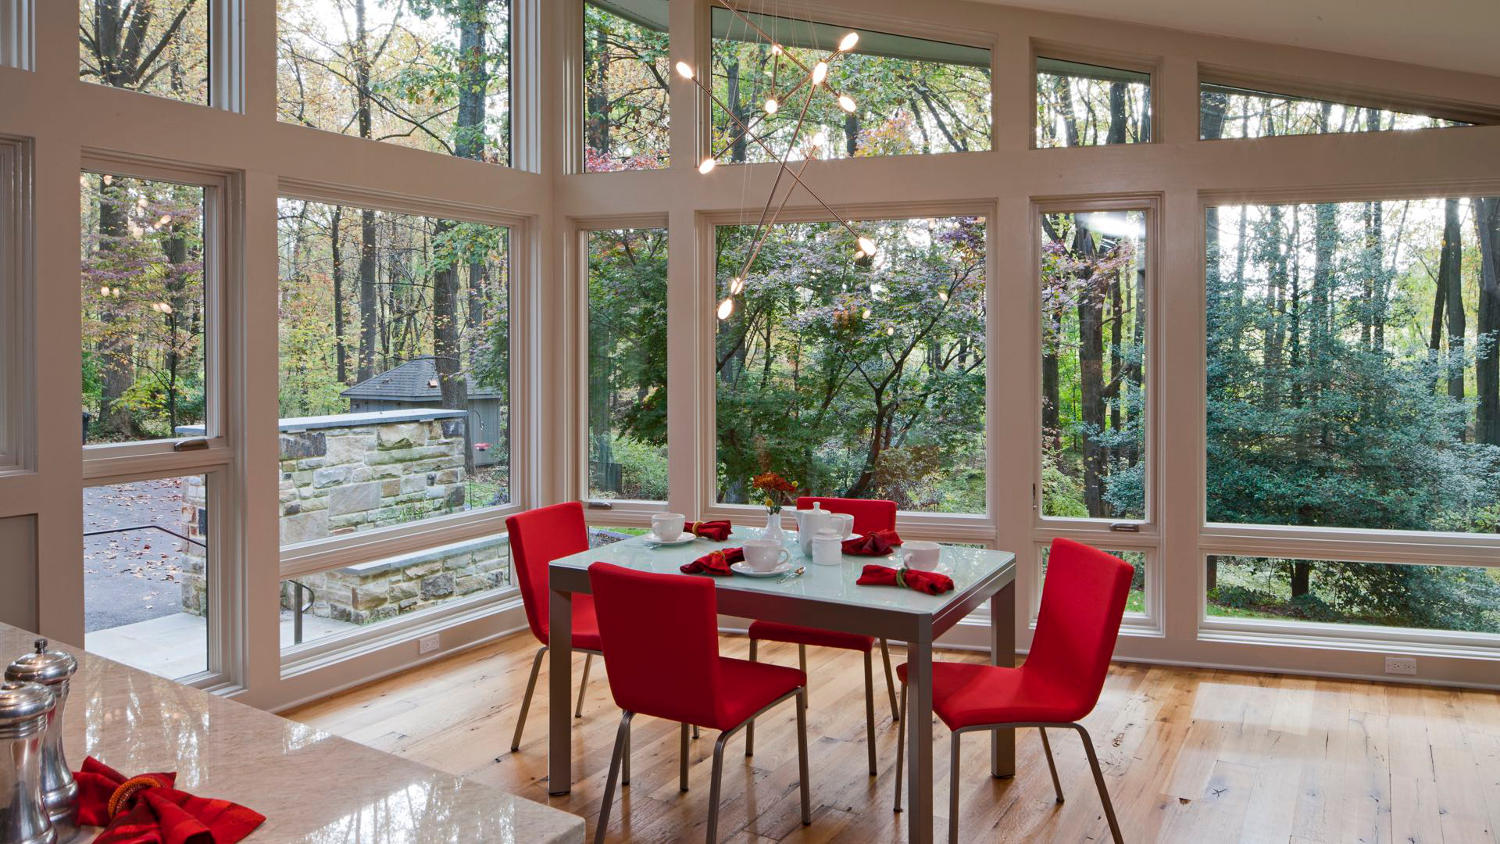 Contemporary window design in custom home eat in kitchen in Maryland